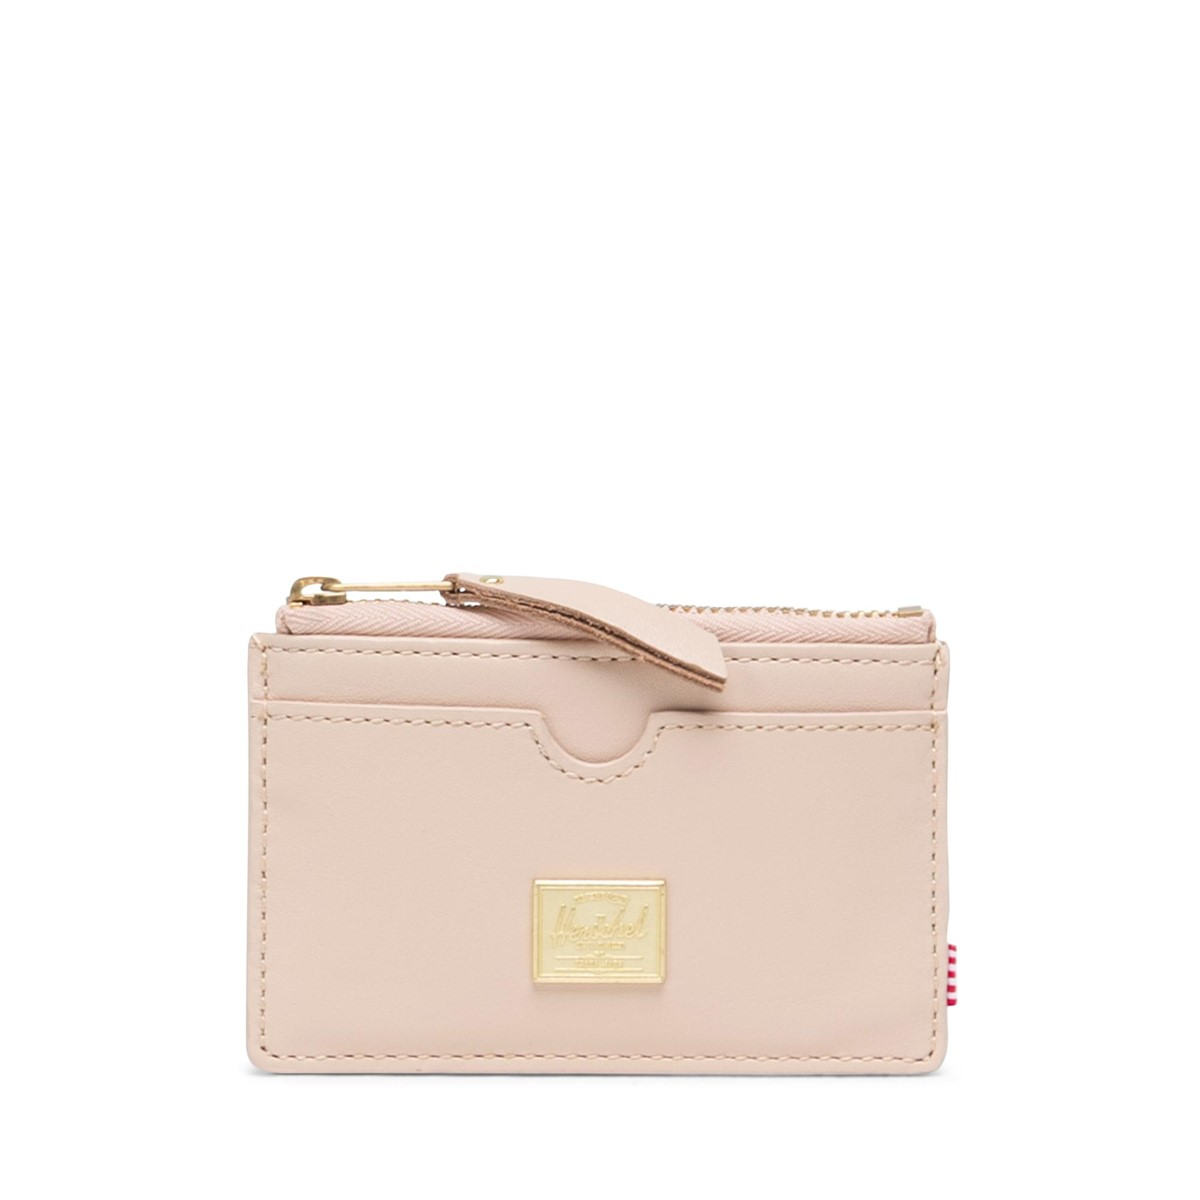 Oscar Leather Wallet in Cream